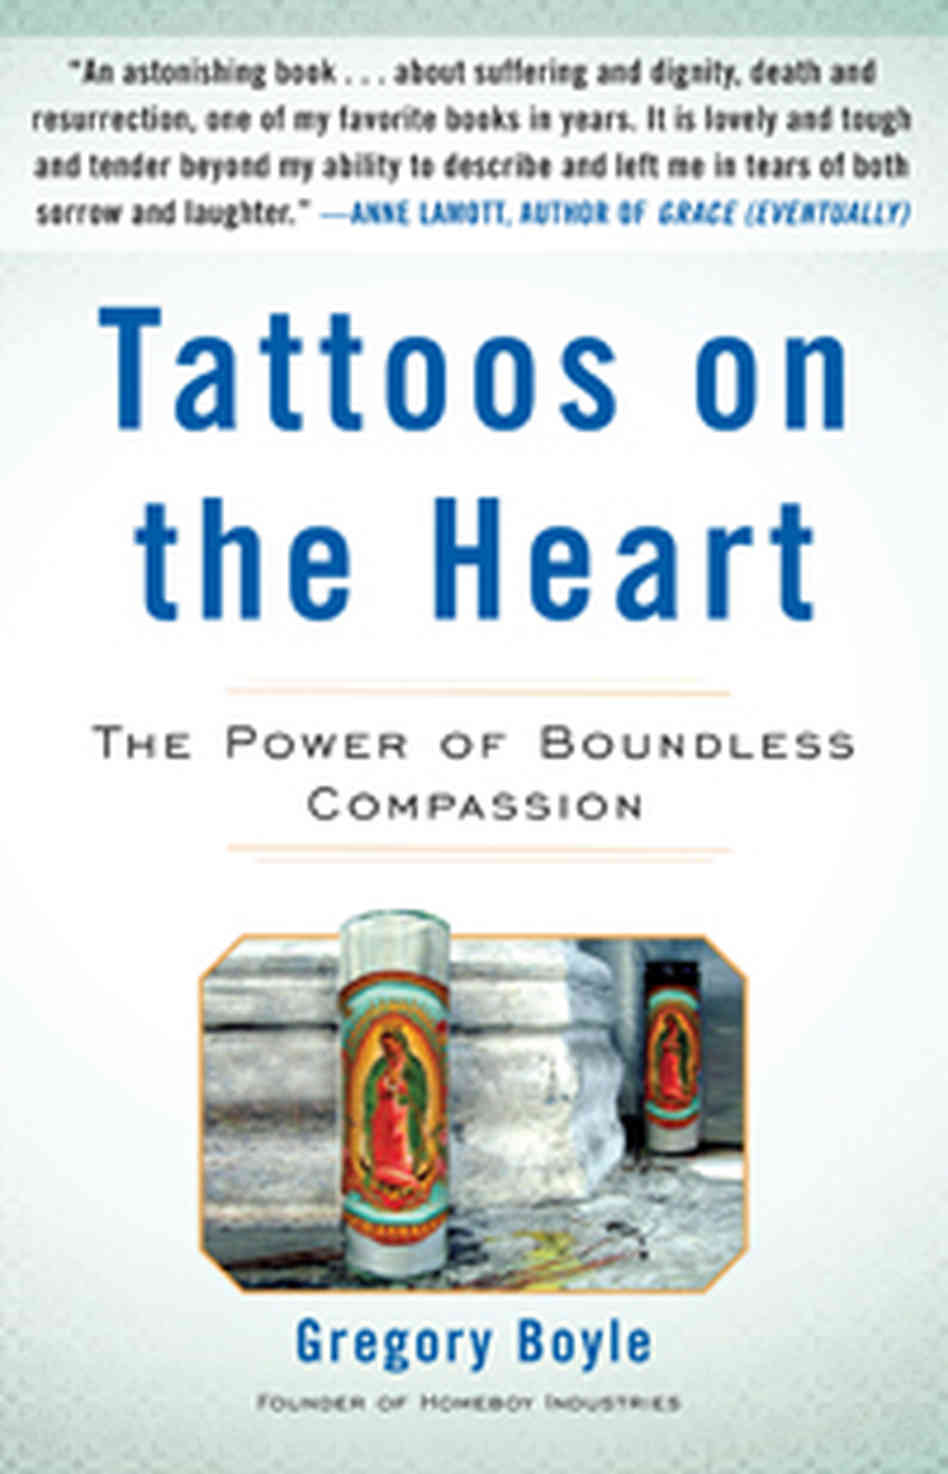 Tattoos on the Heart by Greg Boyle